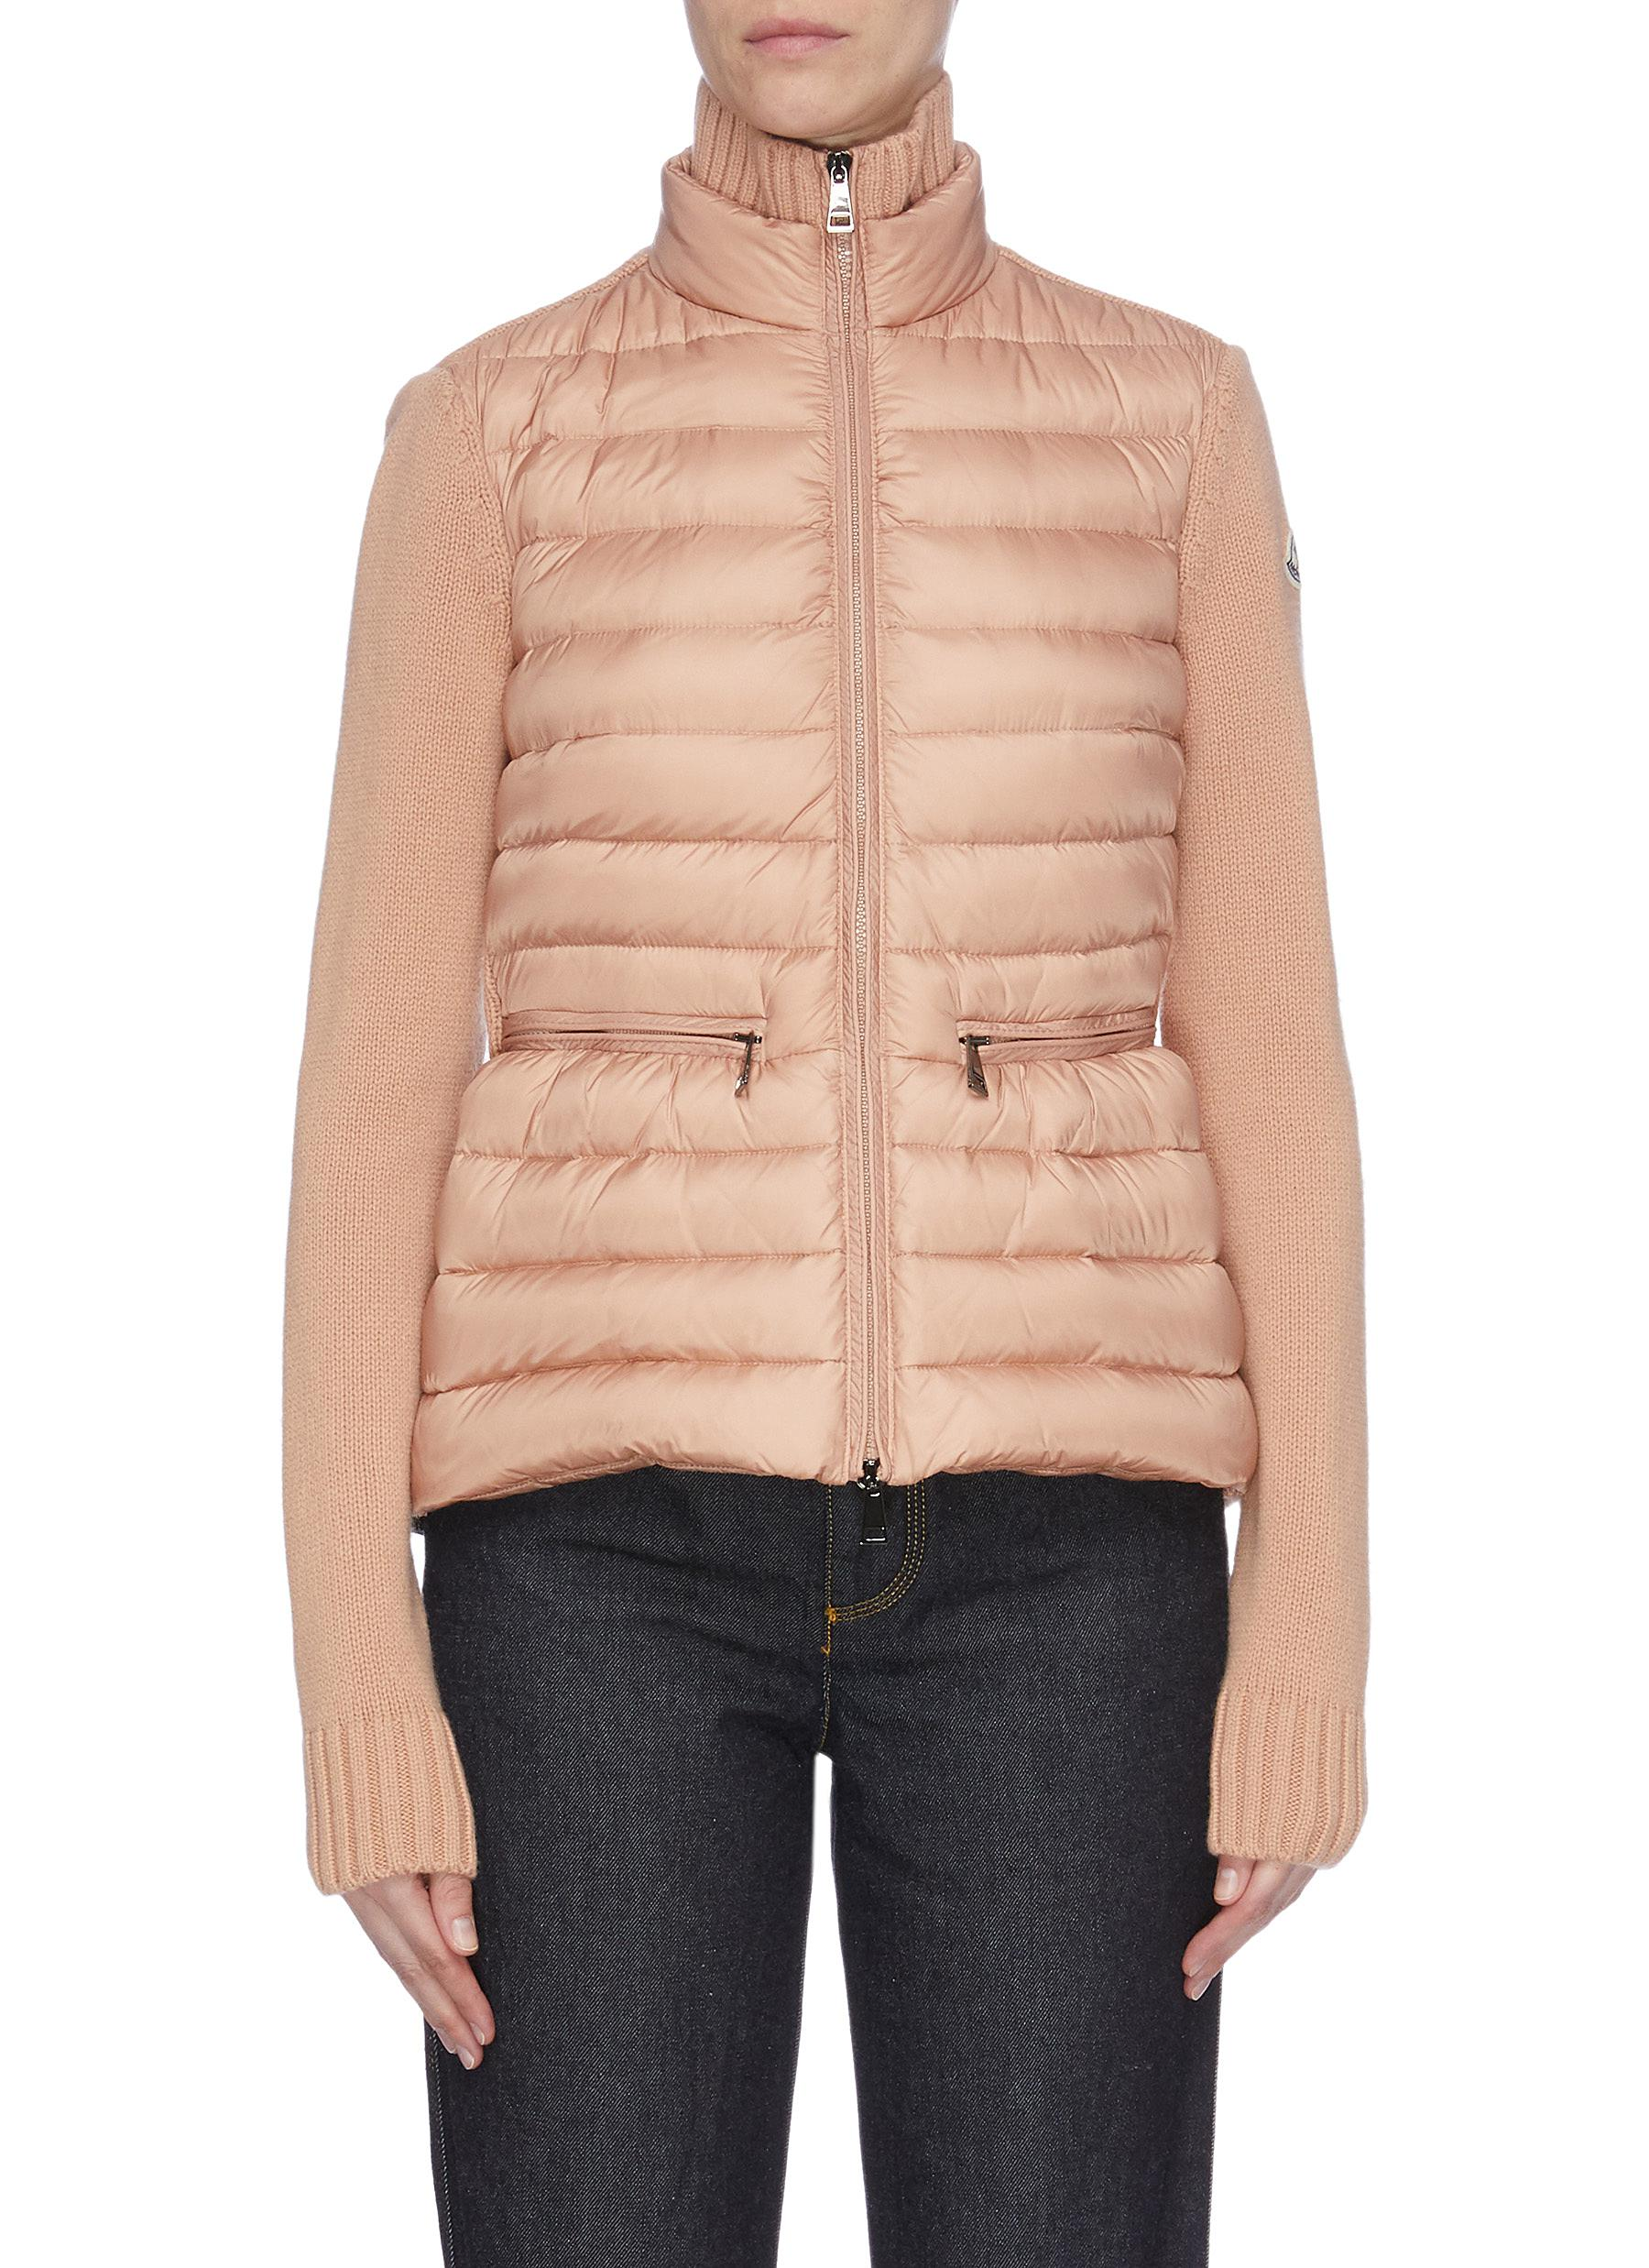 Puffer panel cardigan by Moncler